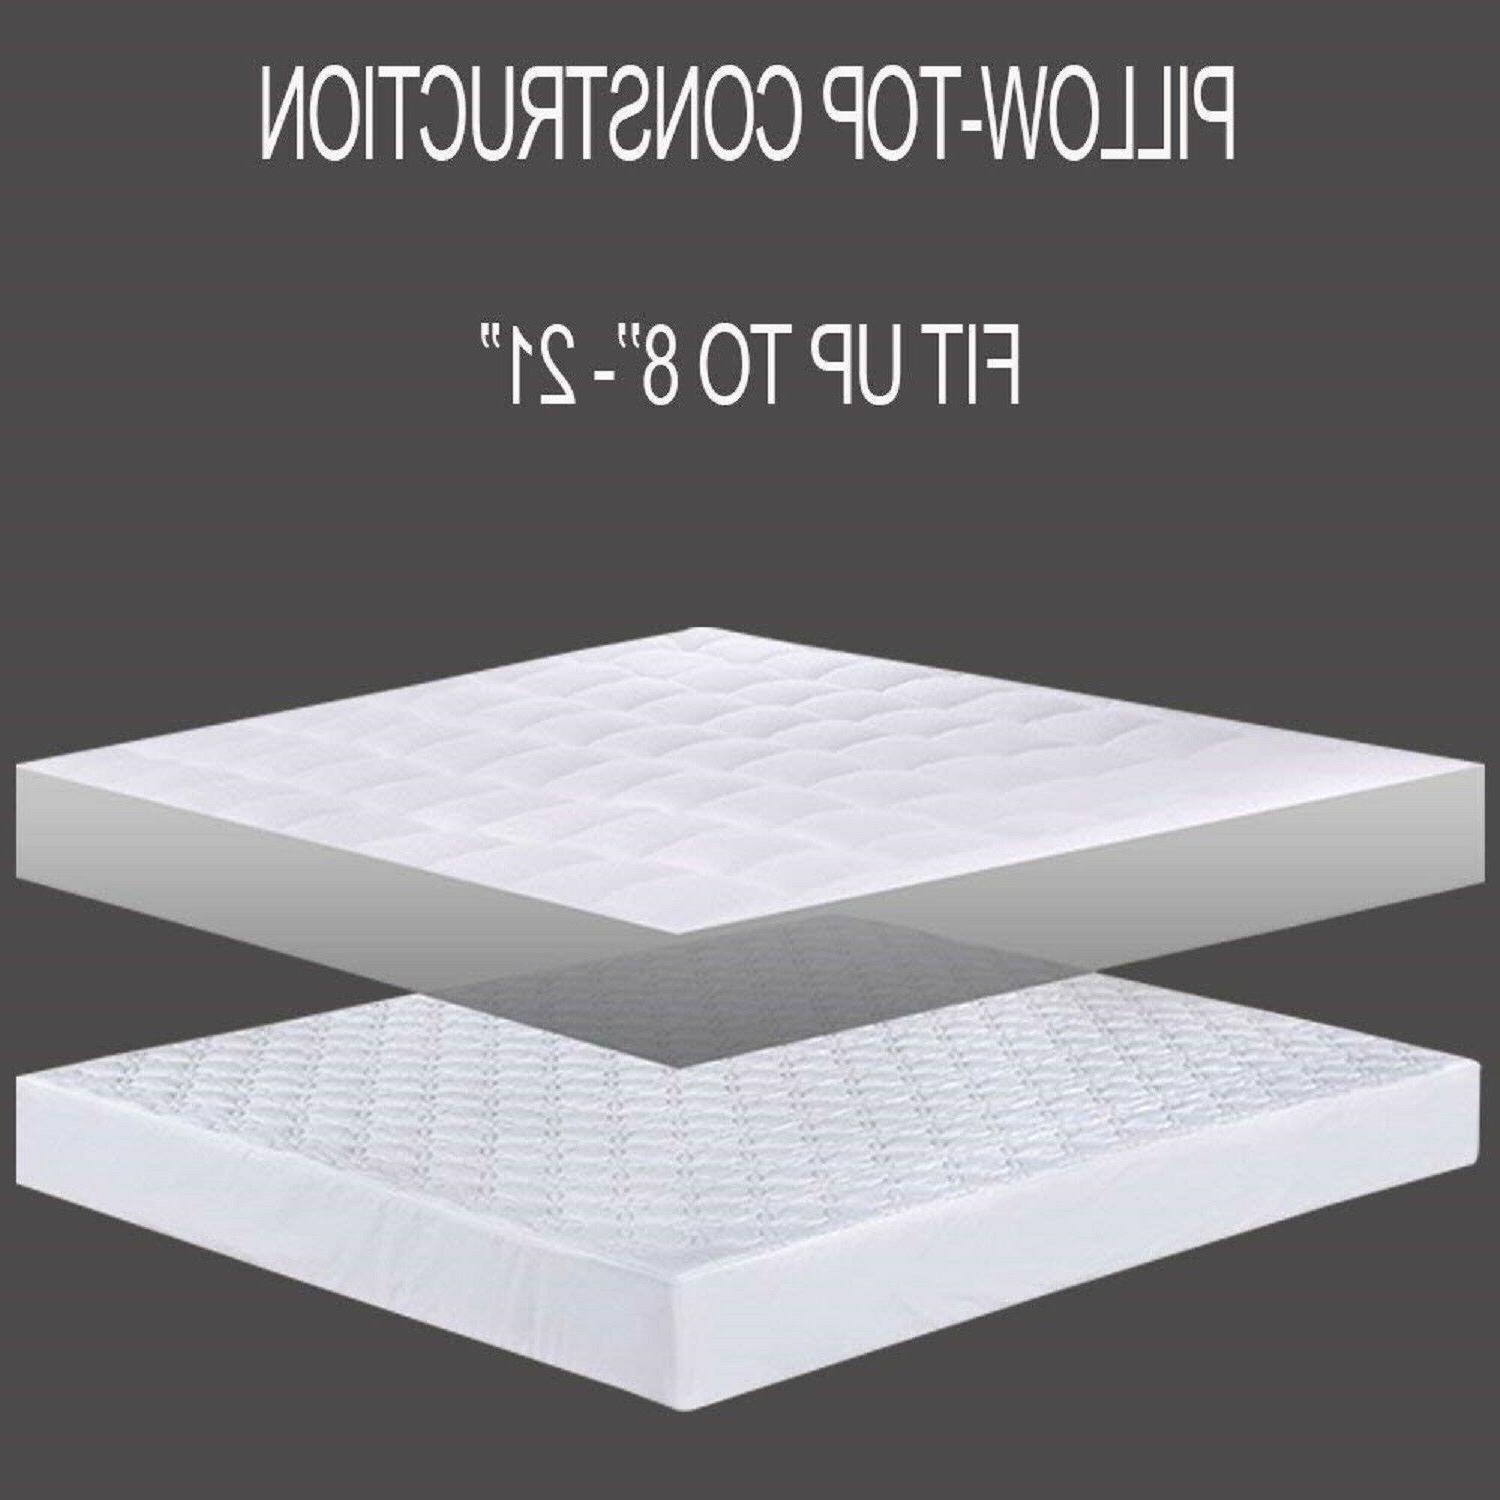 MATTRESS PAD COVER Full Queen Size Deep Topper